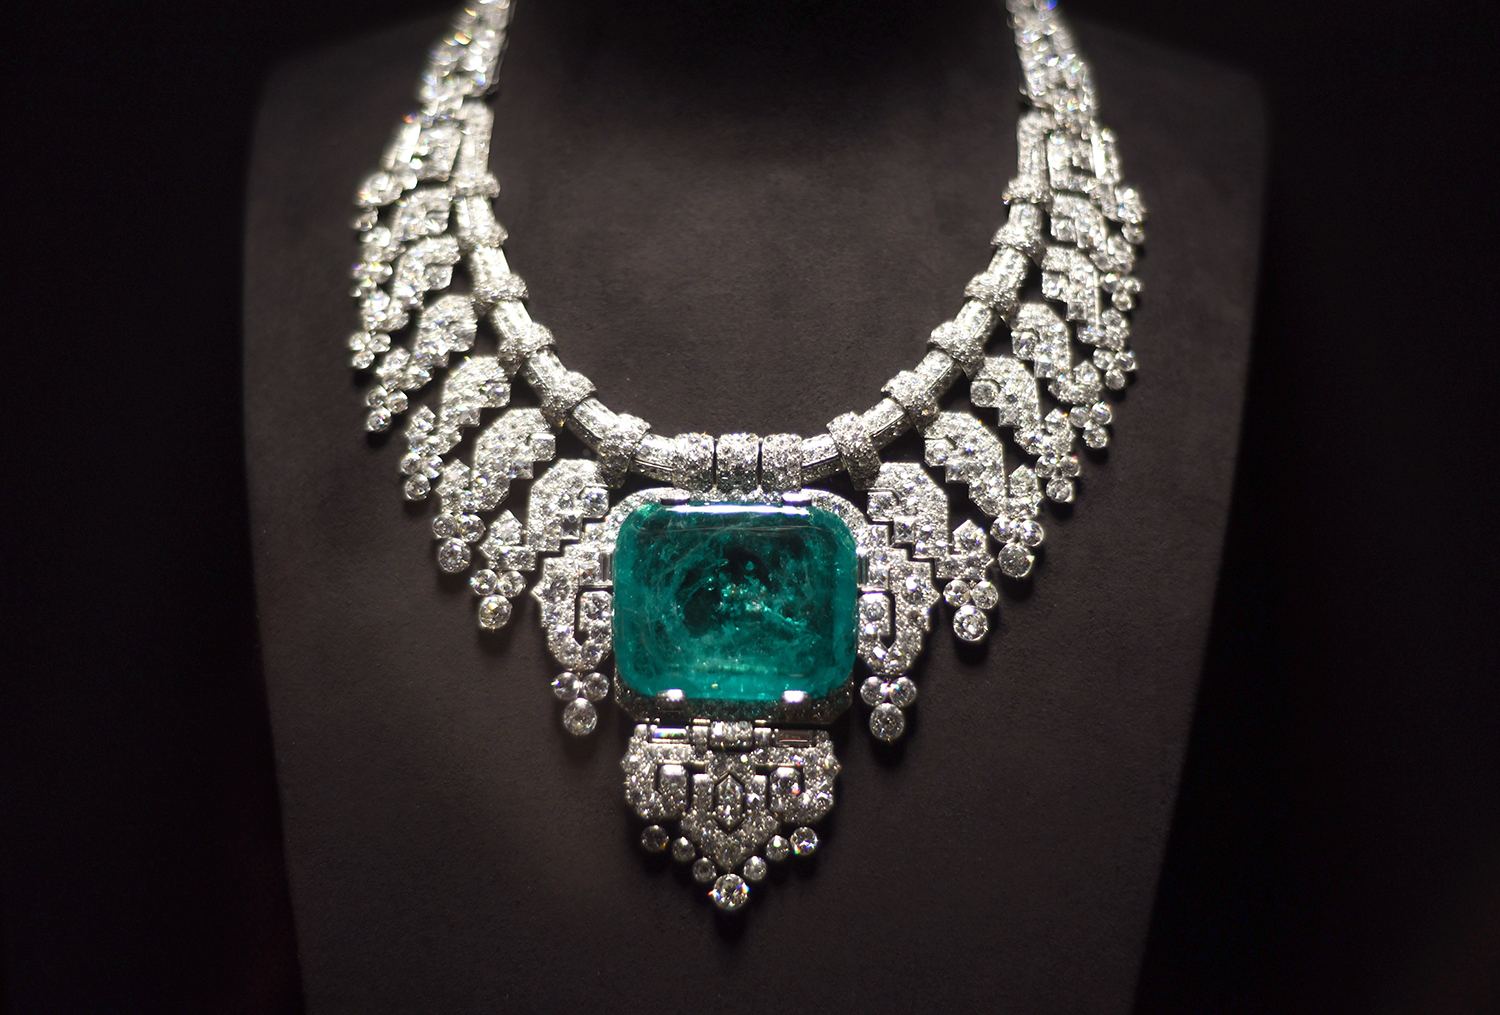 Stylecurated cartier haute joaillerie exhibition for Haute joaillerie cartier